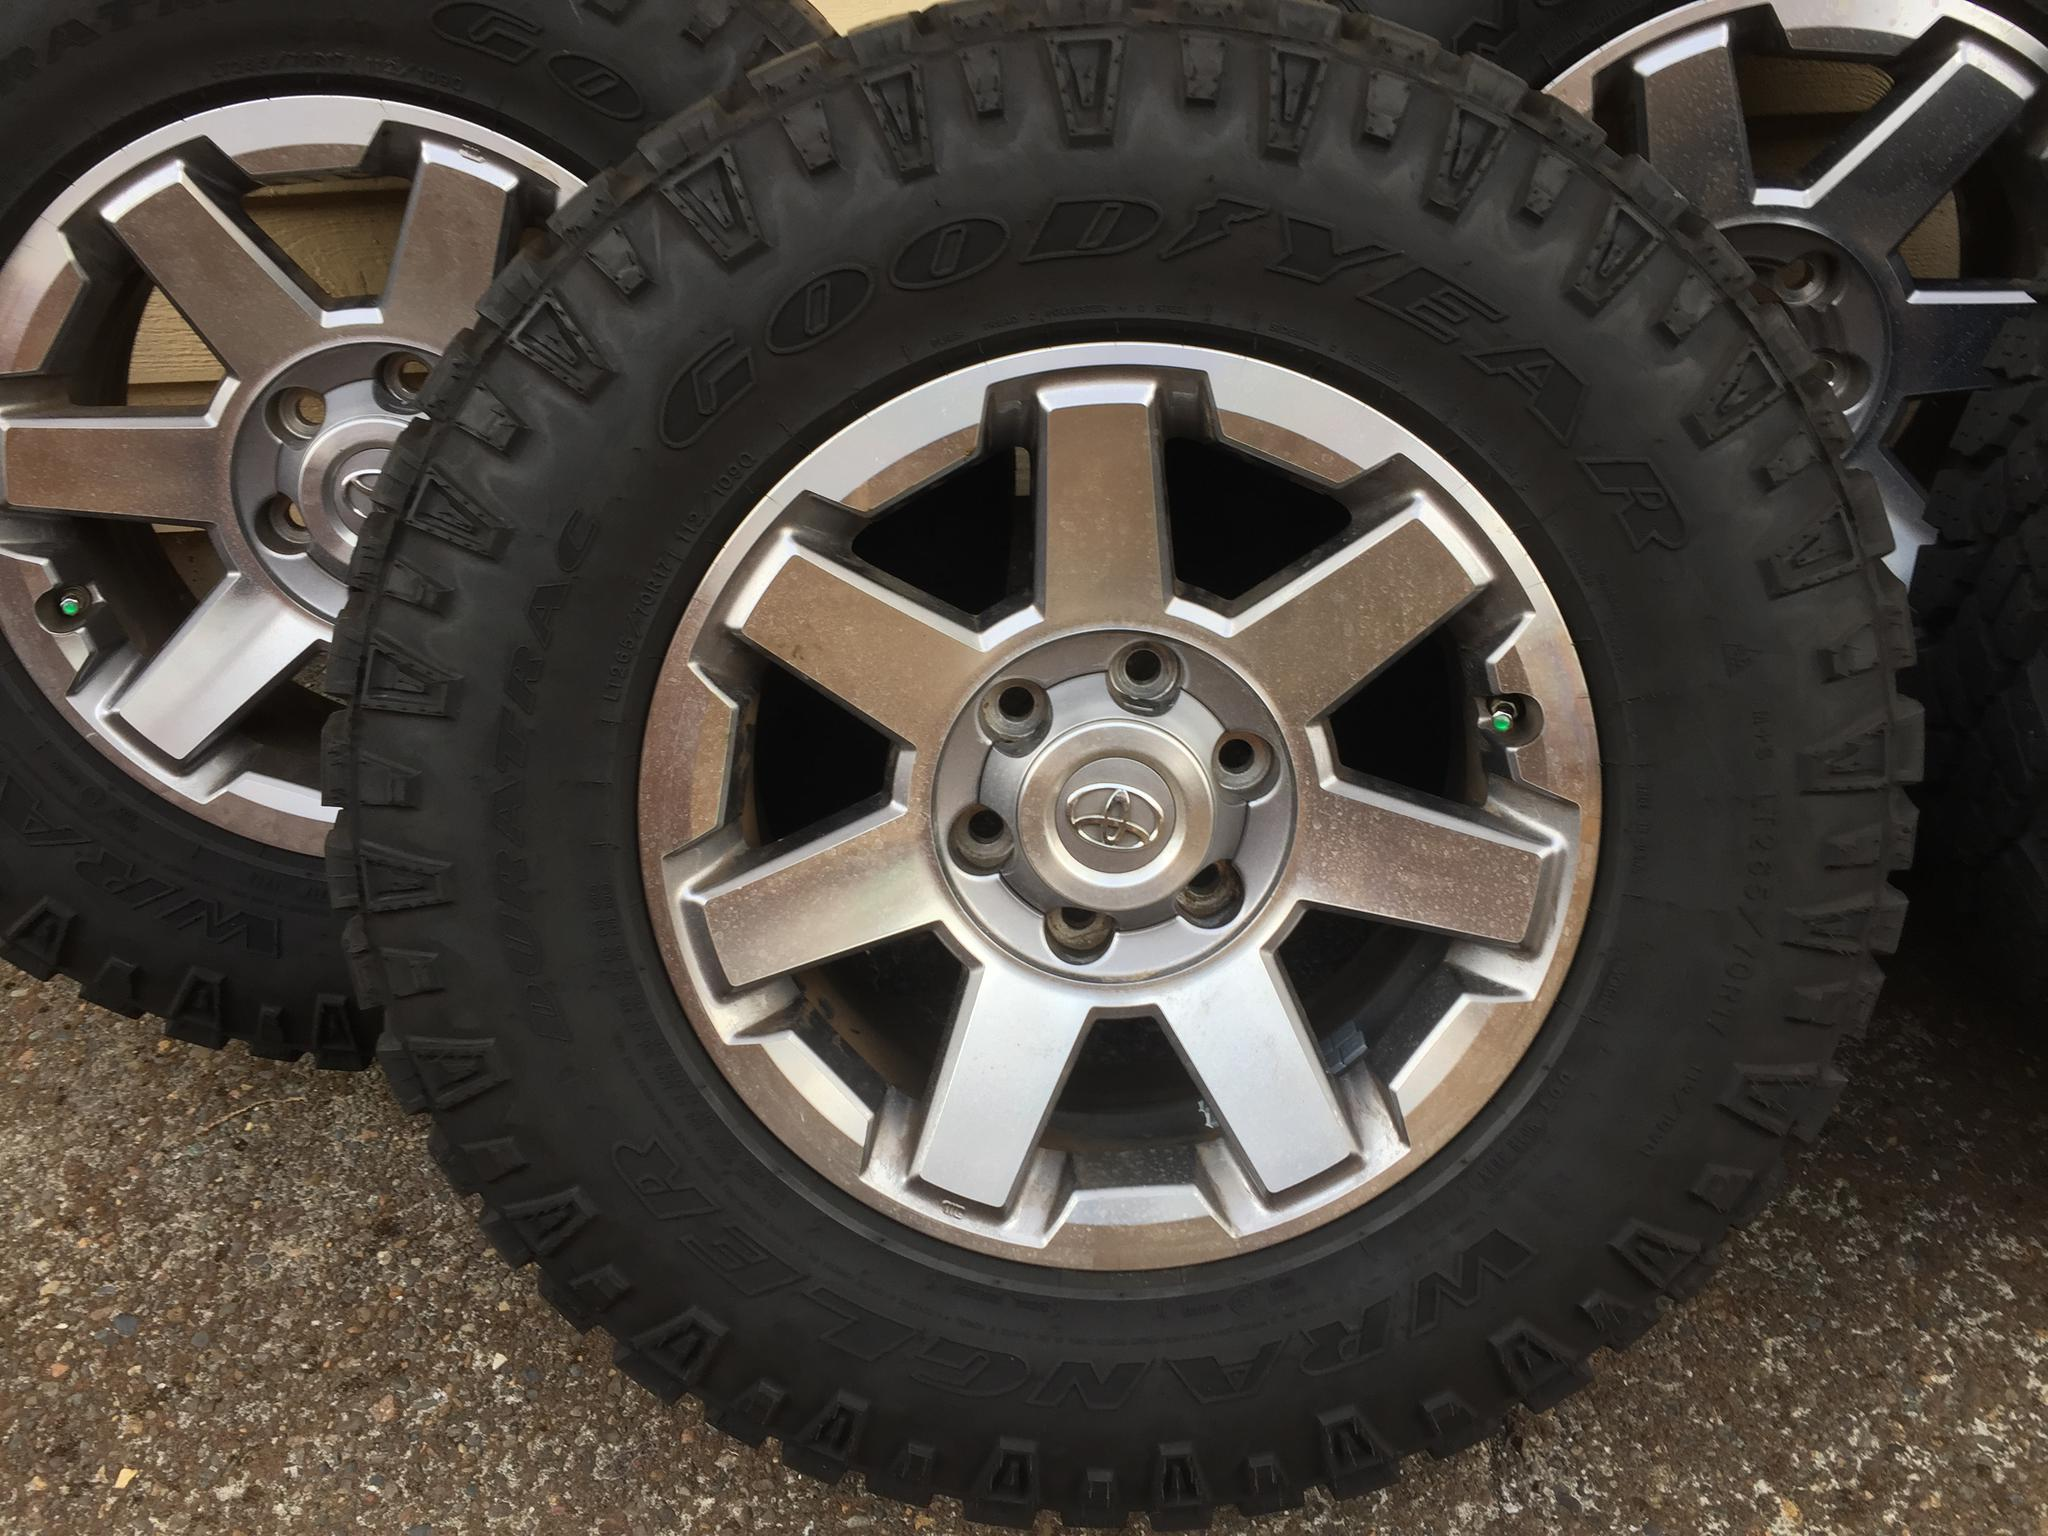 5 Goodyear Duratrac Tires Mounted On Stock 2014 Fj Cruiser